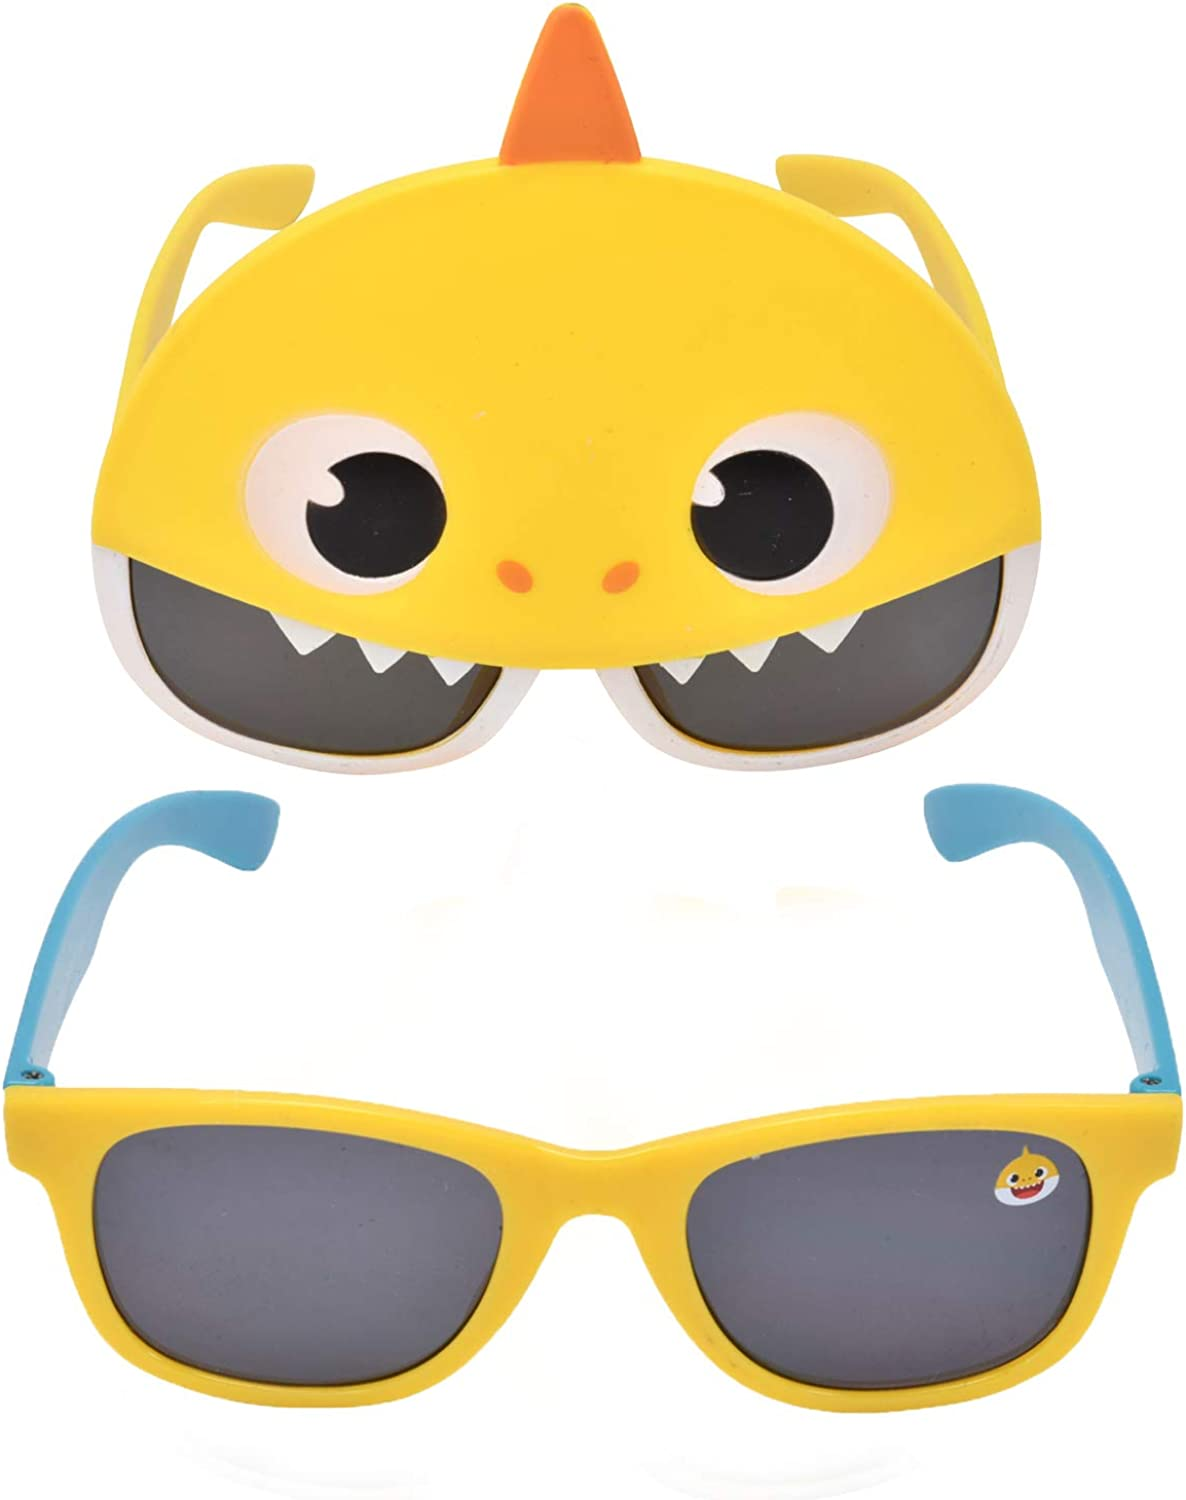 Baby Shark 2-Pack Kids Sunglasses with Carrying Case, Toddler Sunglasses